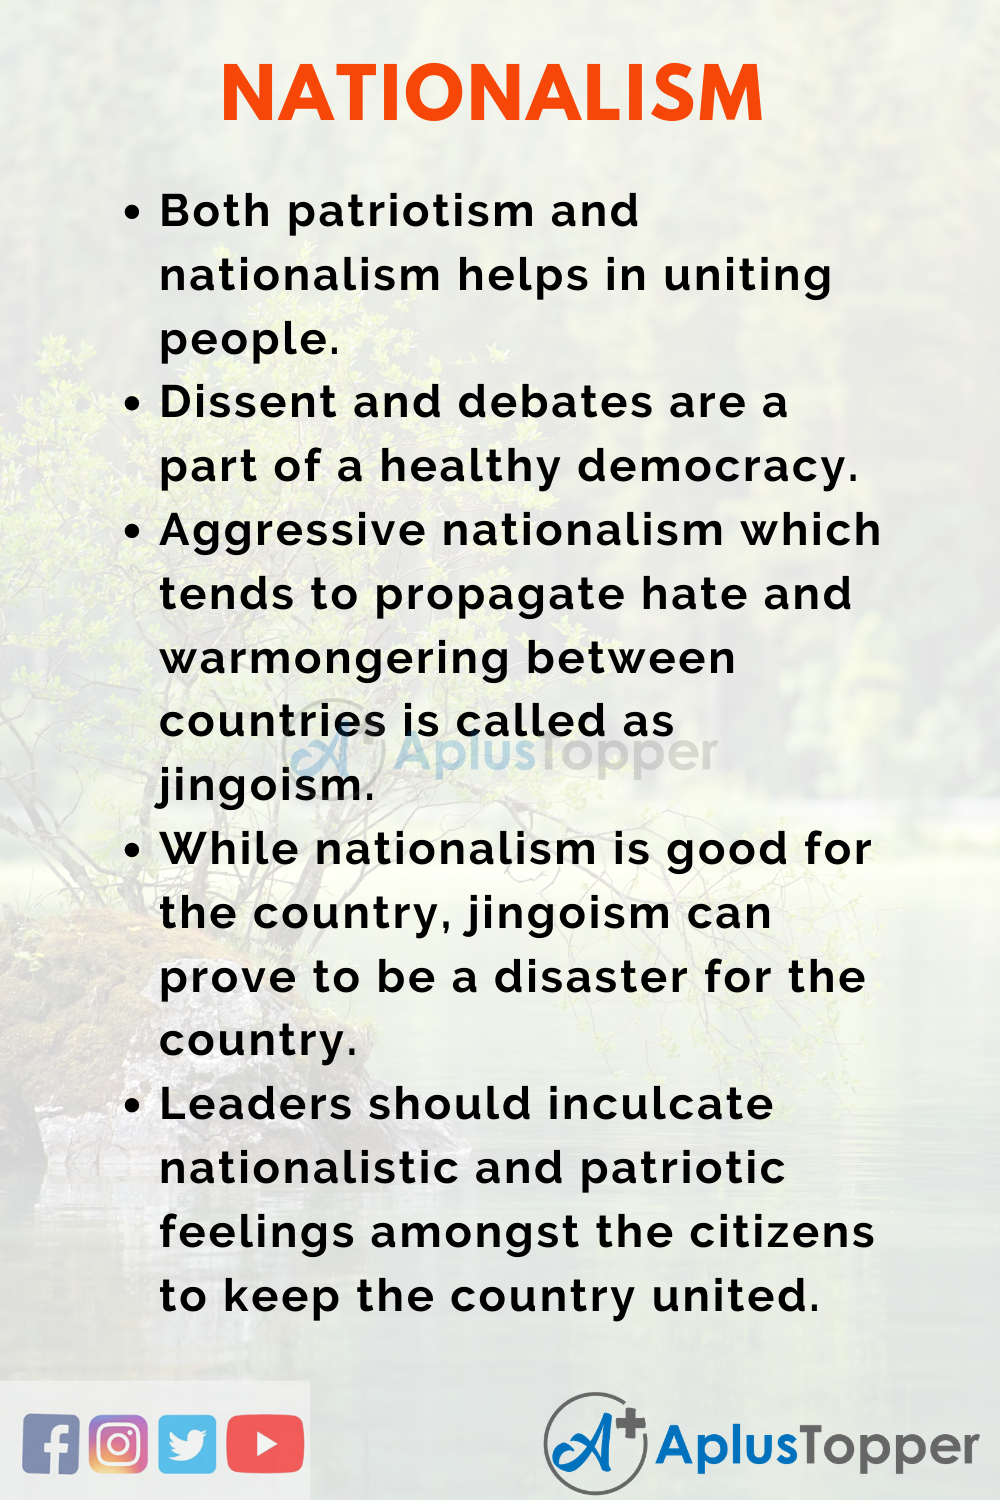 Essay on Nationalism